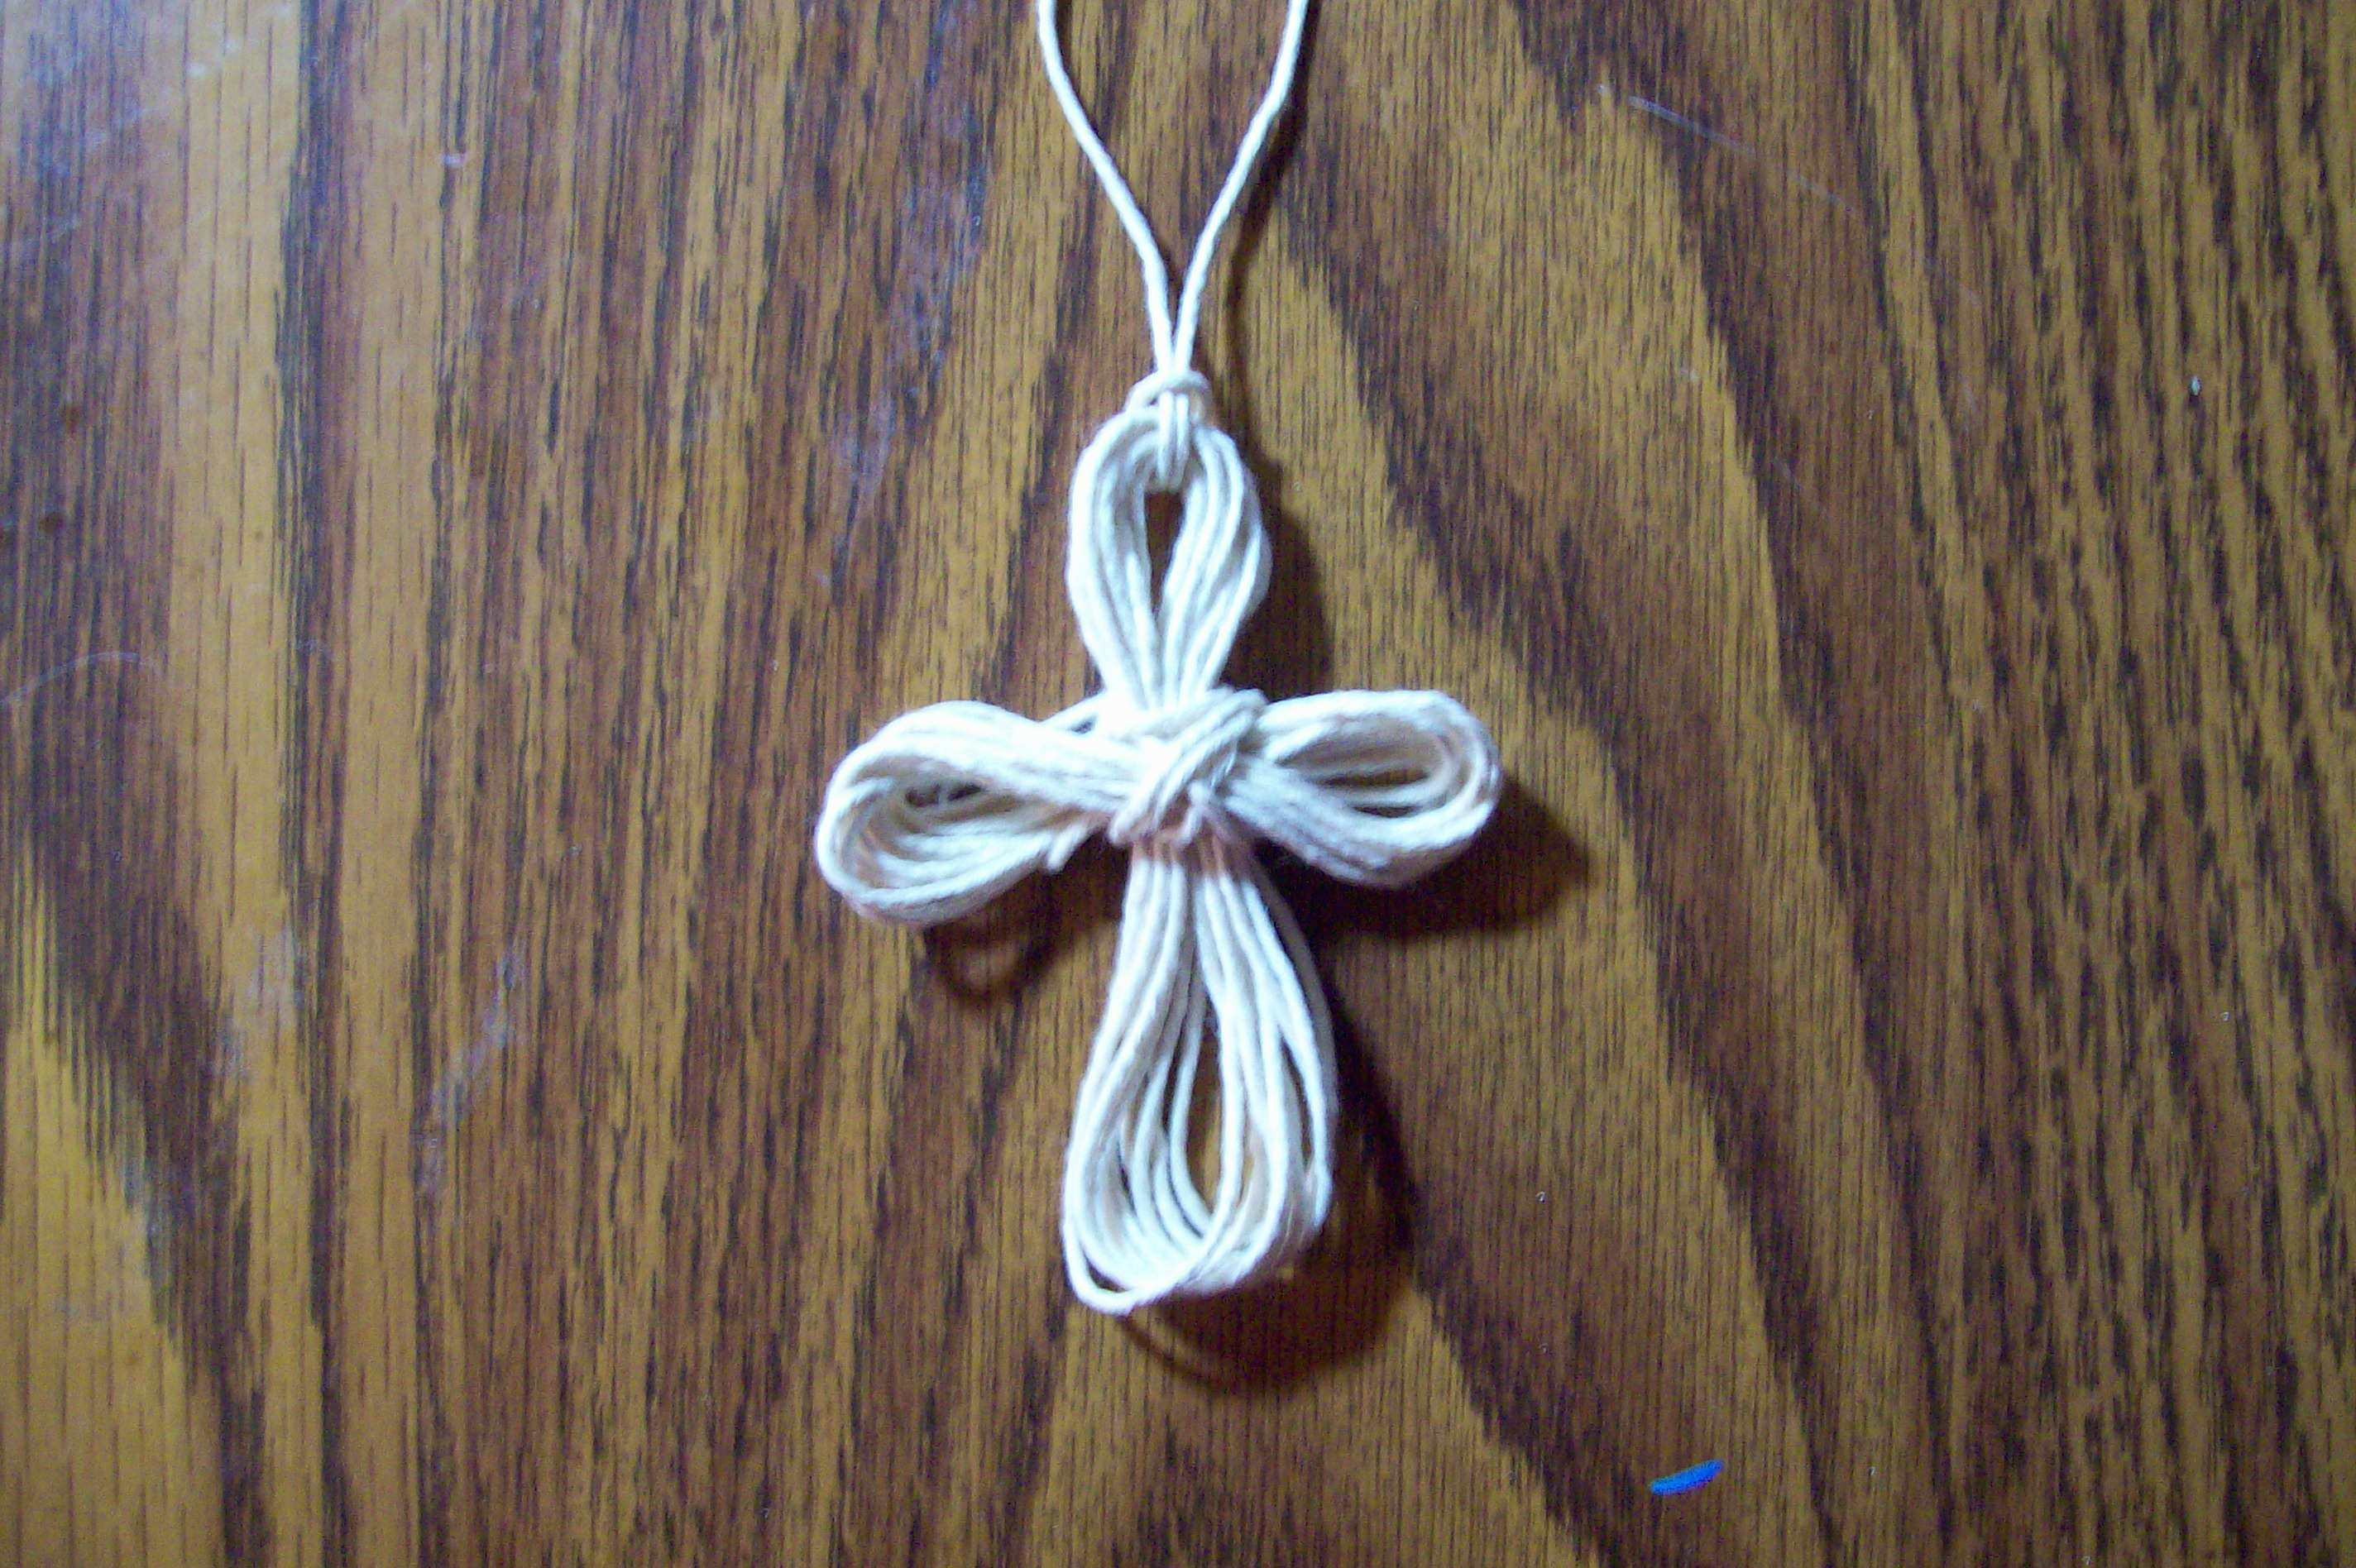 How to make a paracord cross necklace with two strings ehow for What can you make out of paracord